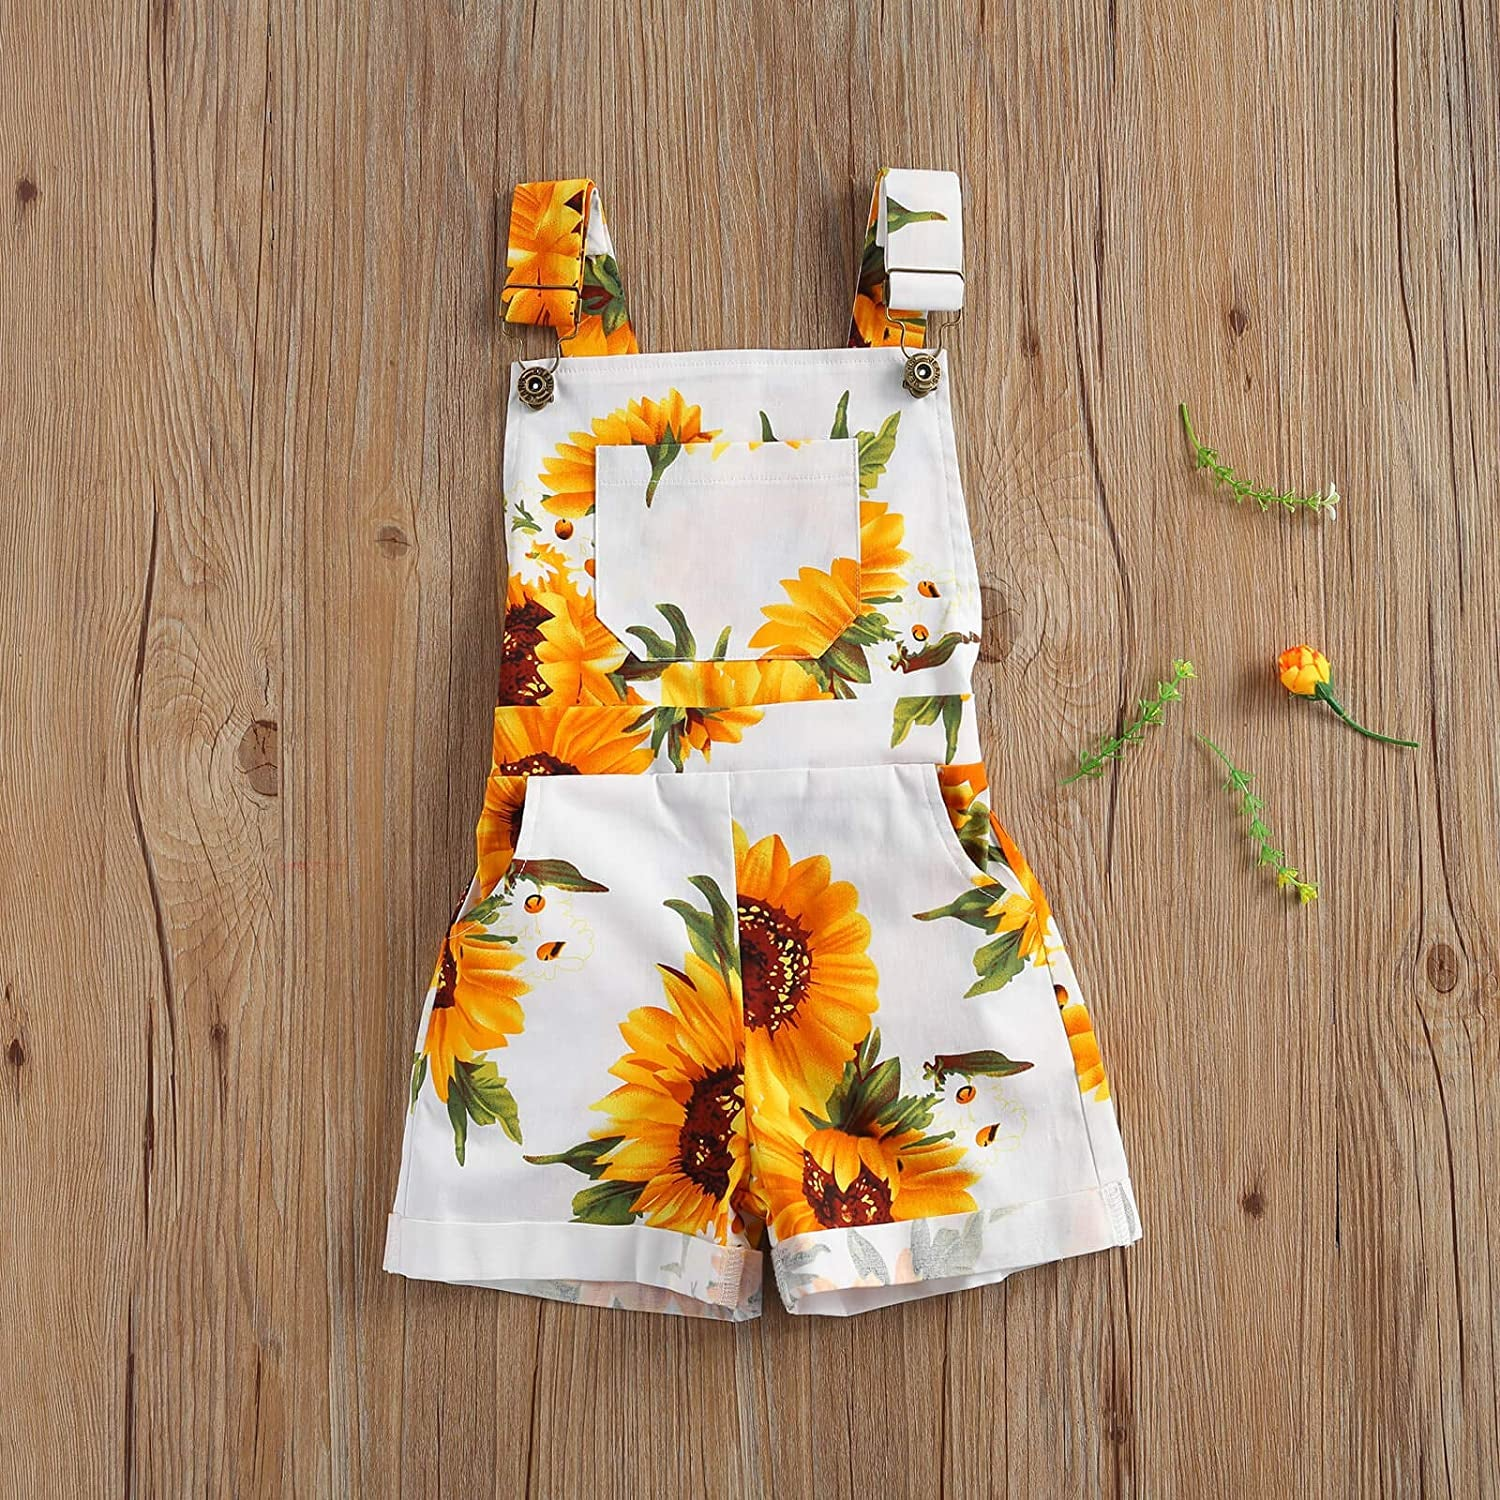 white children's overalls with yellow sunflowers on them